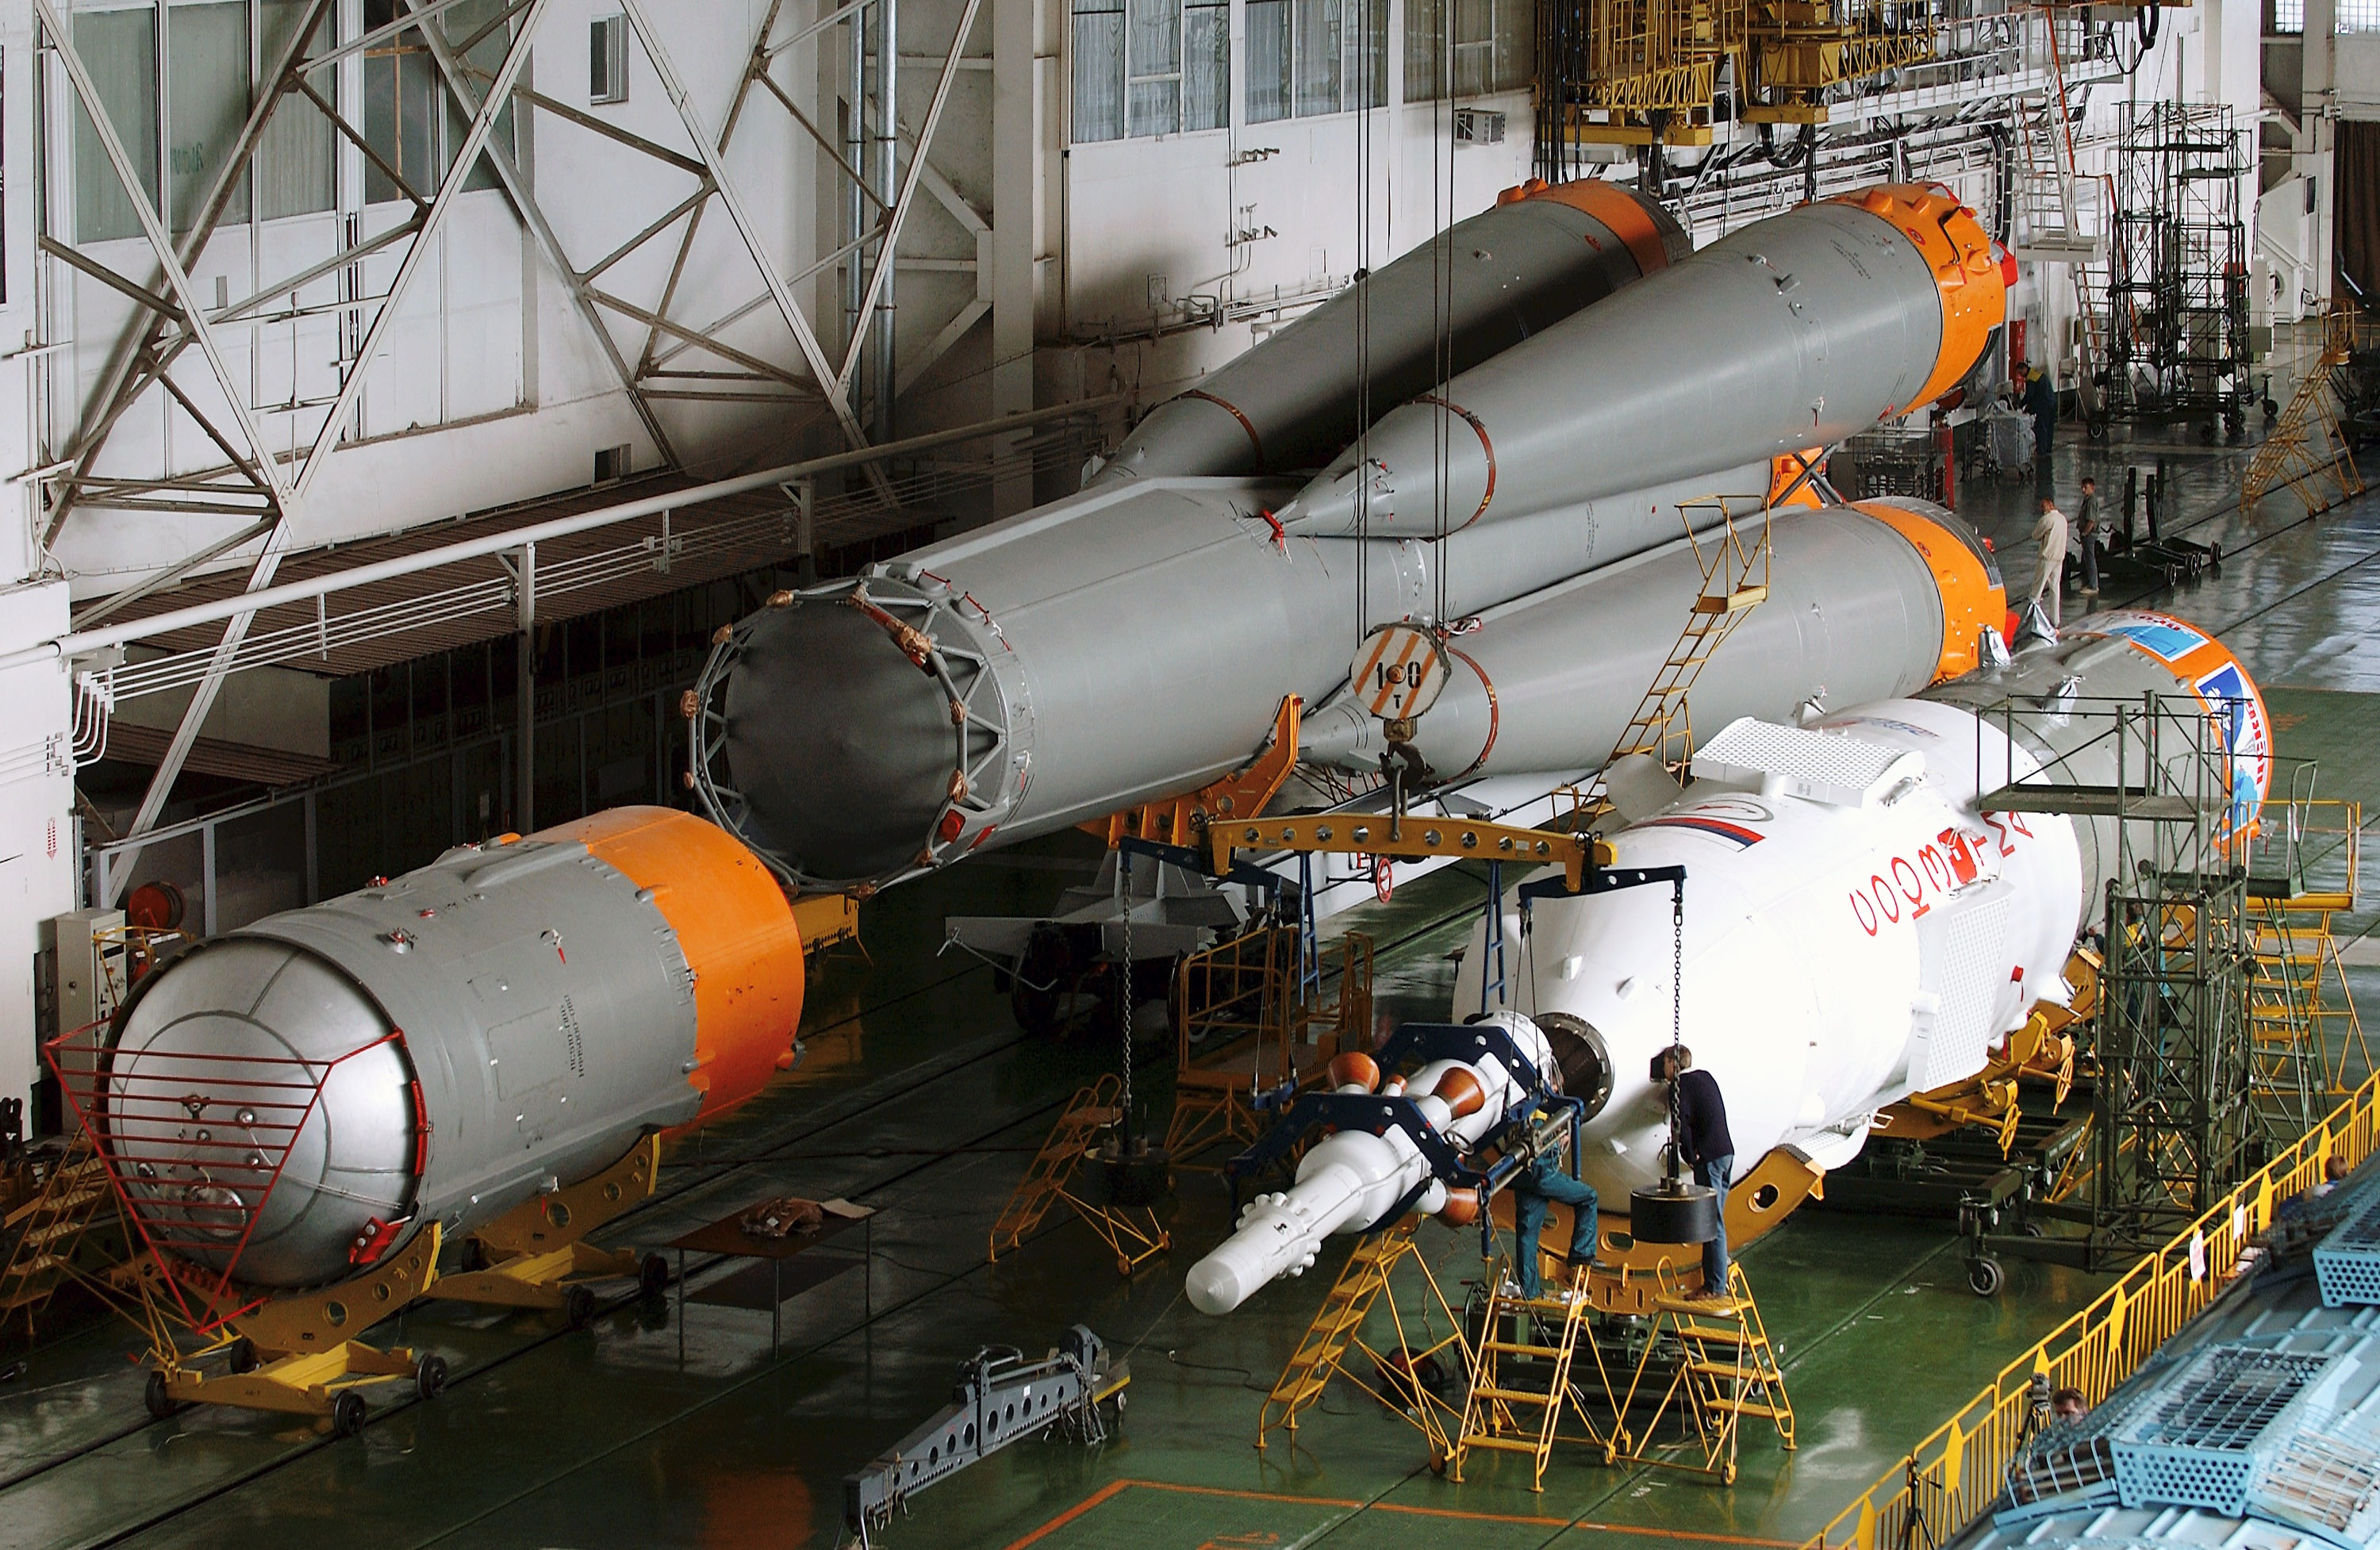 Soyuz_rocket_assembly